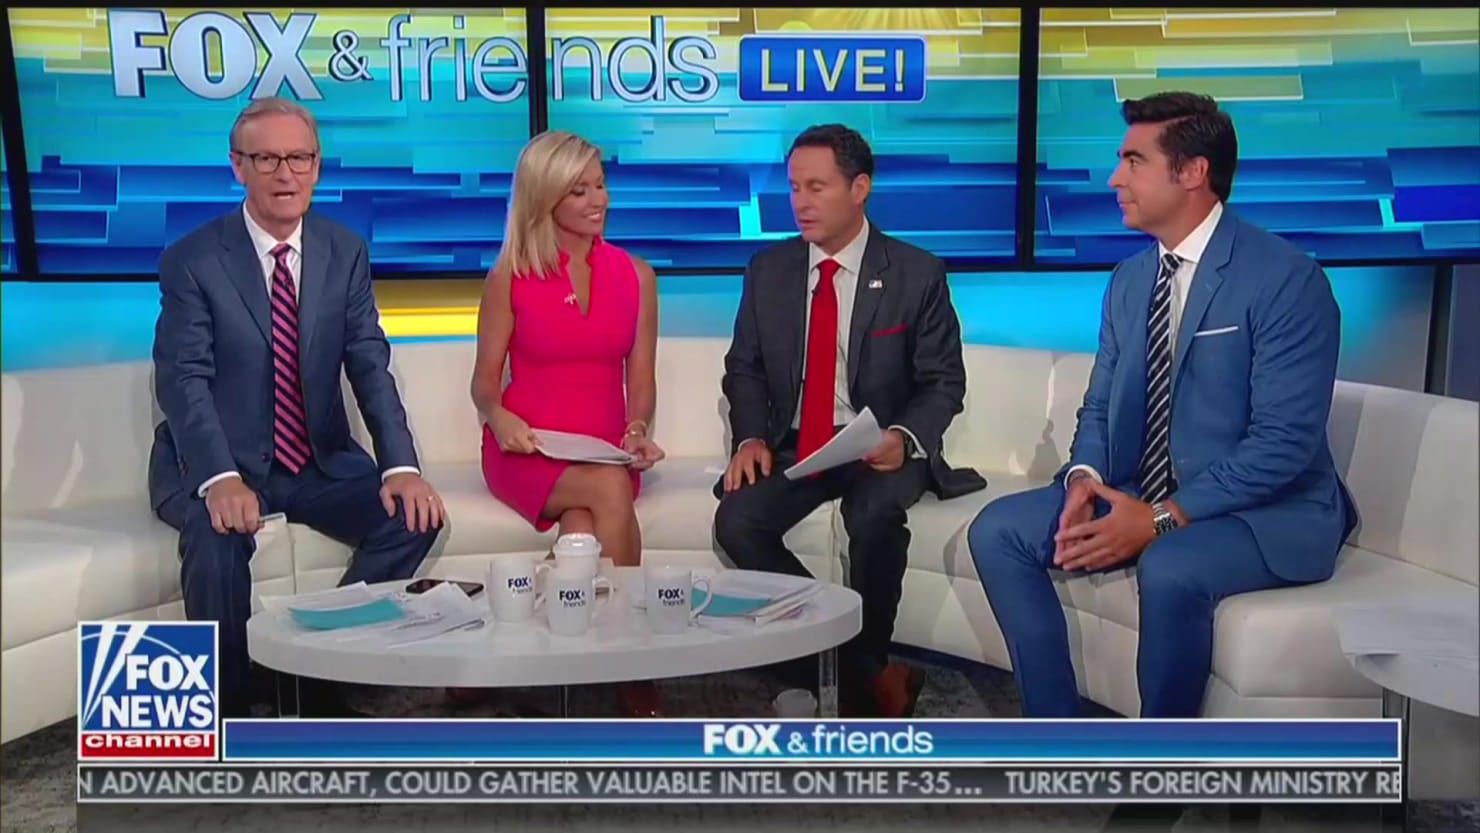 'Fox & Friends' Defends 'Send Her Back' Chant: It's Just Like a Football Game Chant